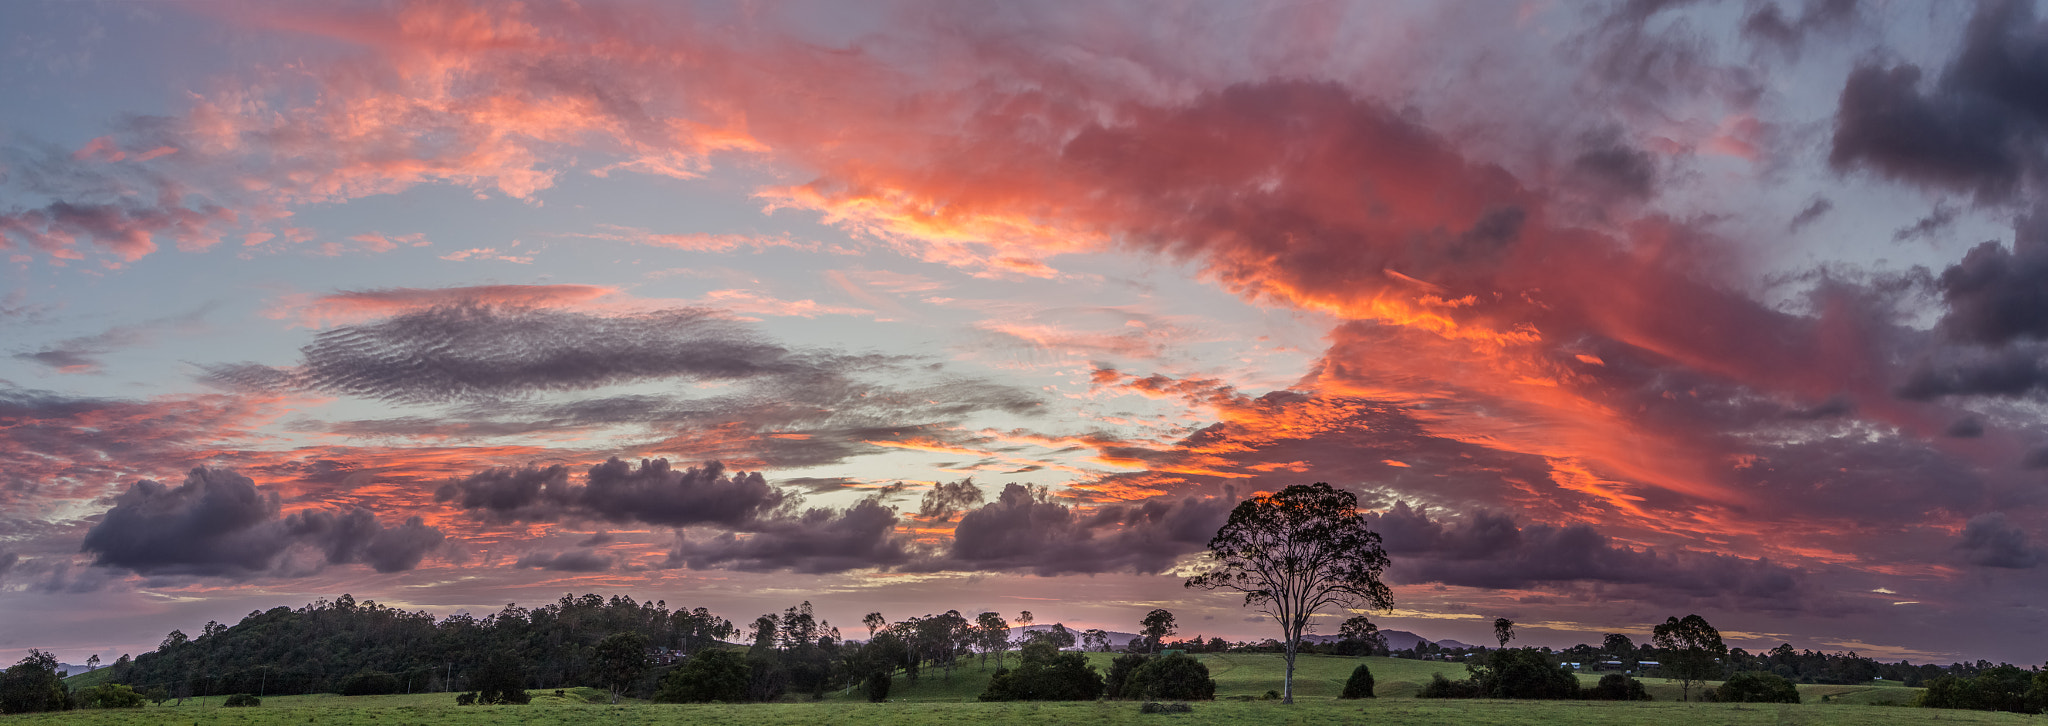 Photograph A Big Sky Sunset by Matthew Post on 500px